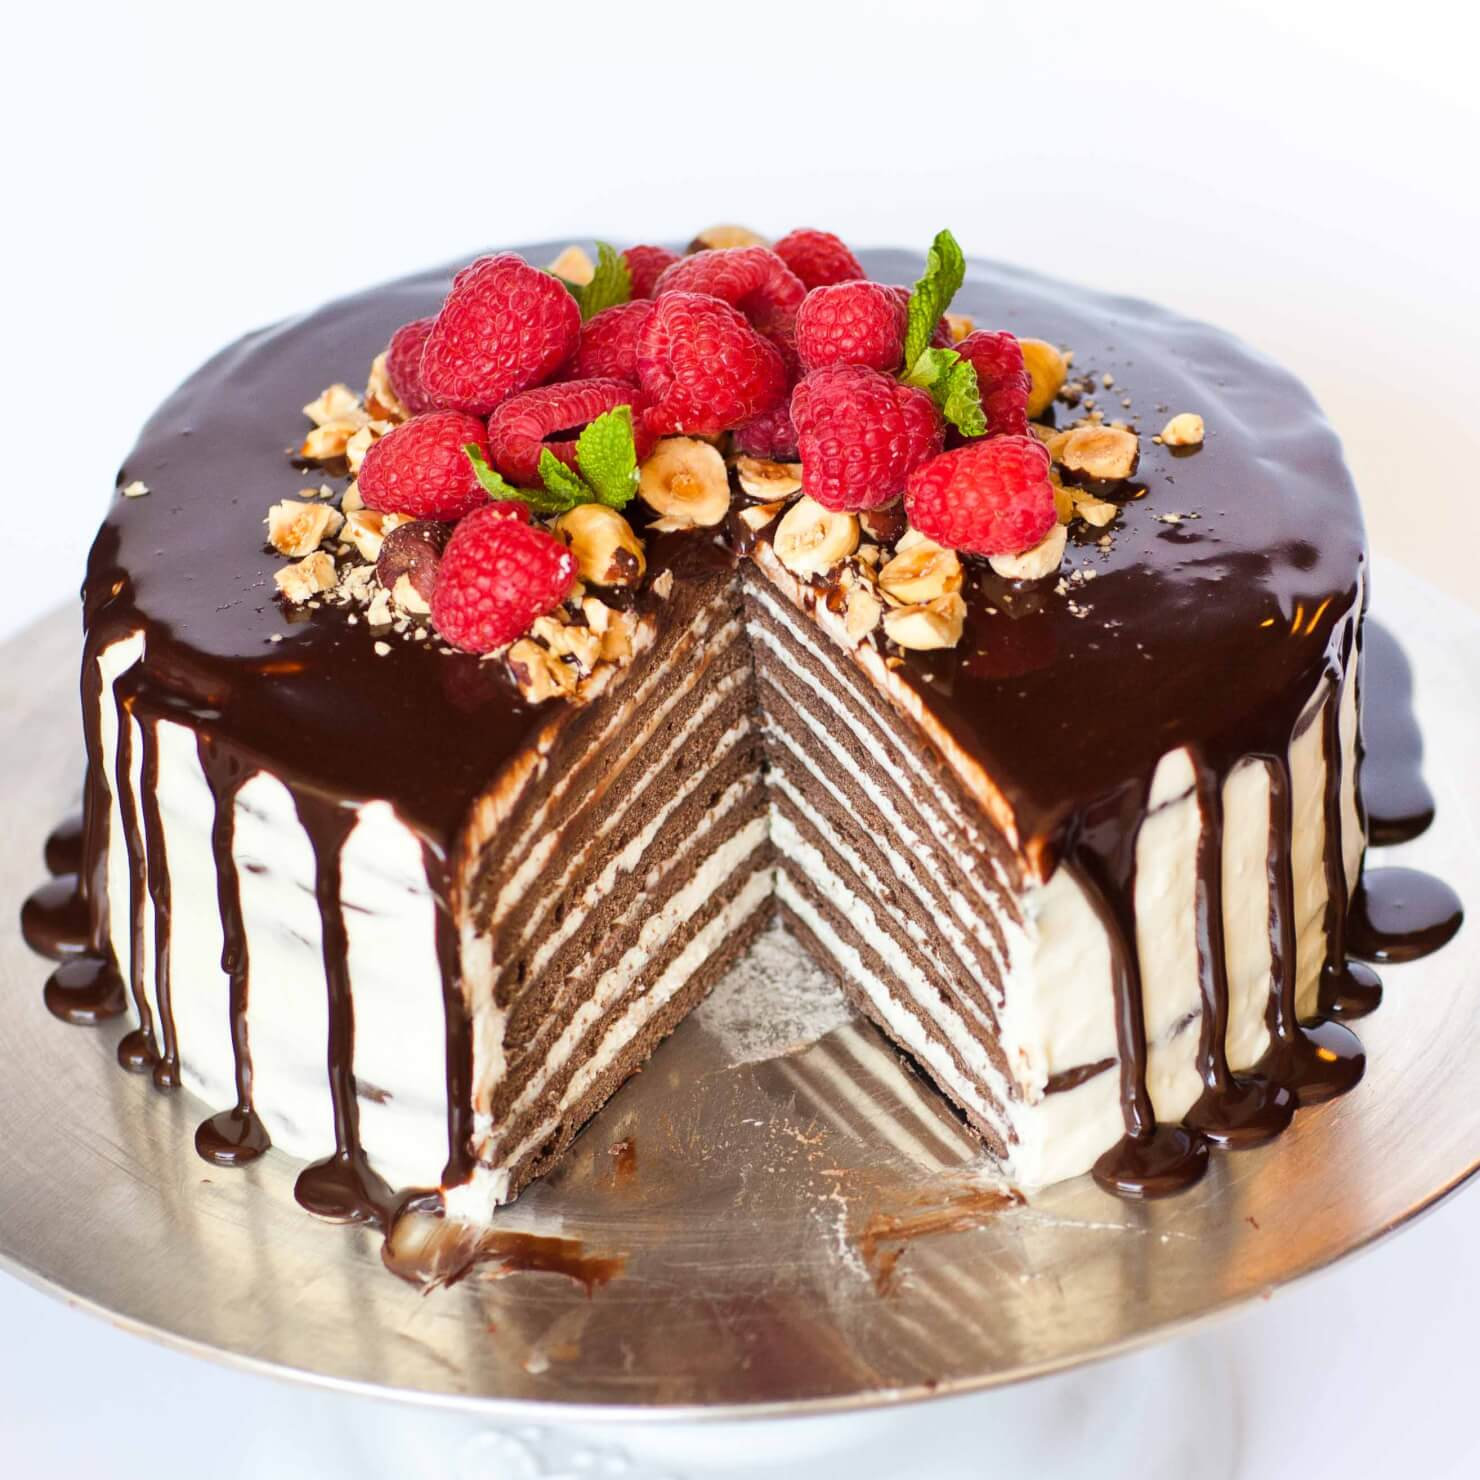 Ukrainian Chocolate Cake